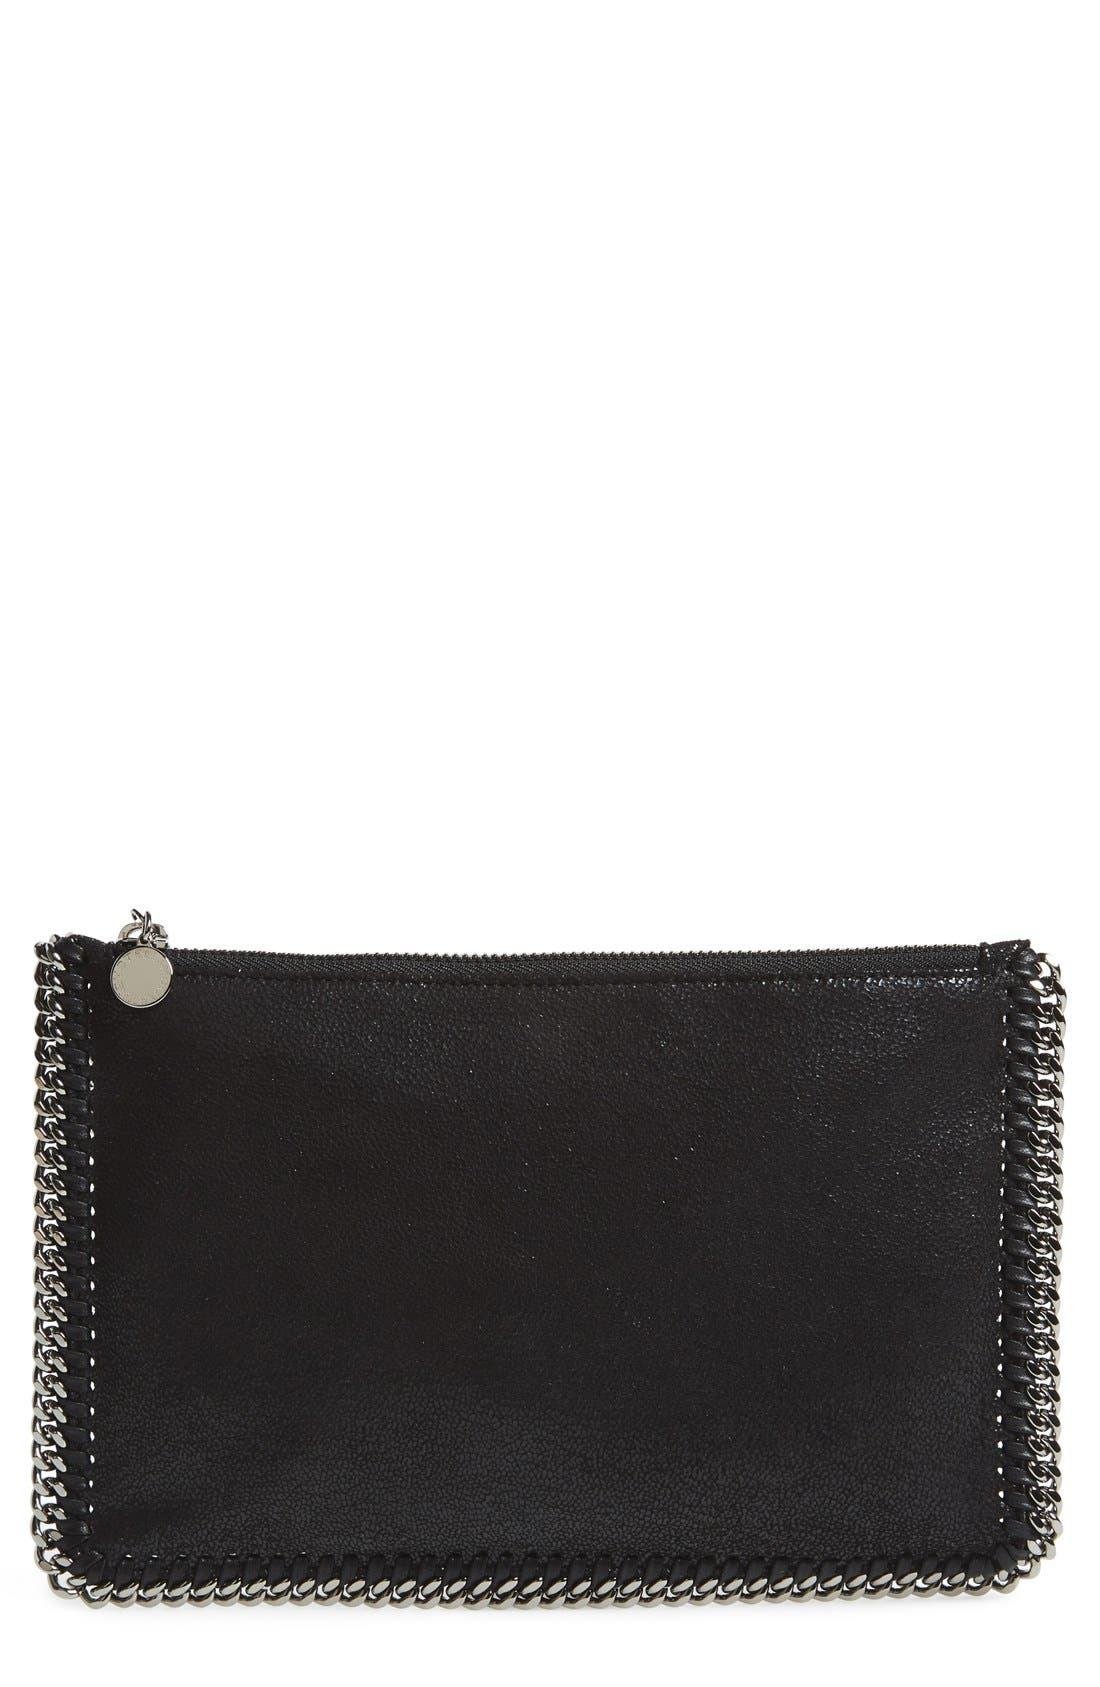 'Falabella' Faux Leather Pouch with Convertible Strap,                         Main,                         color, 002